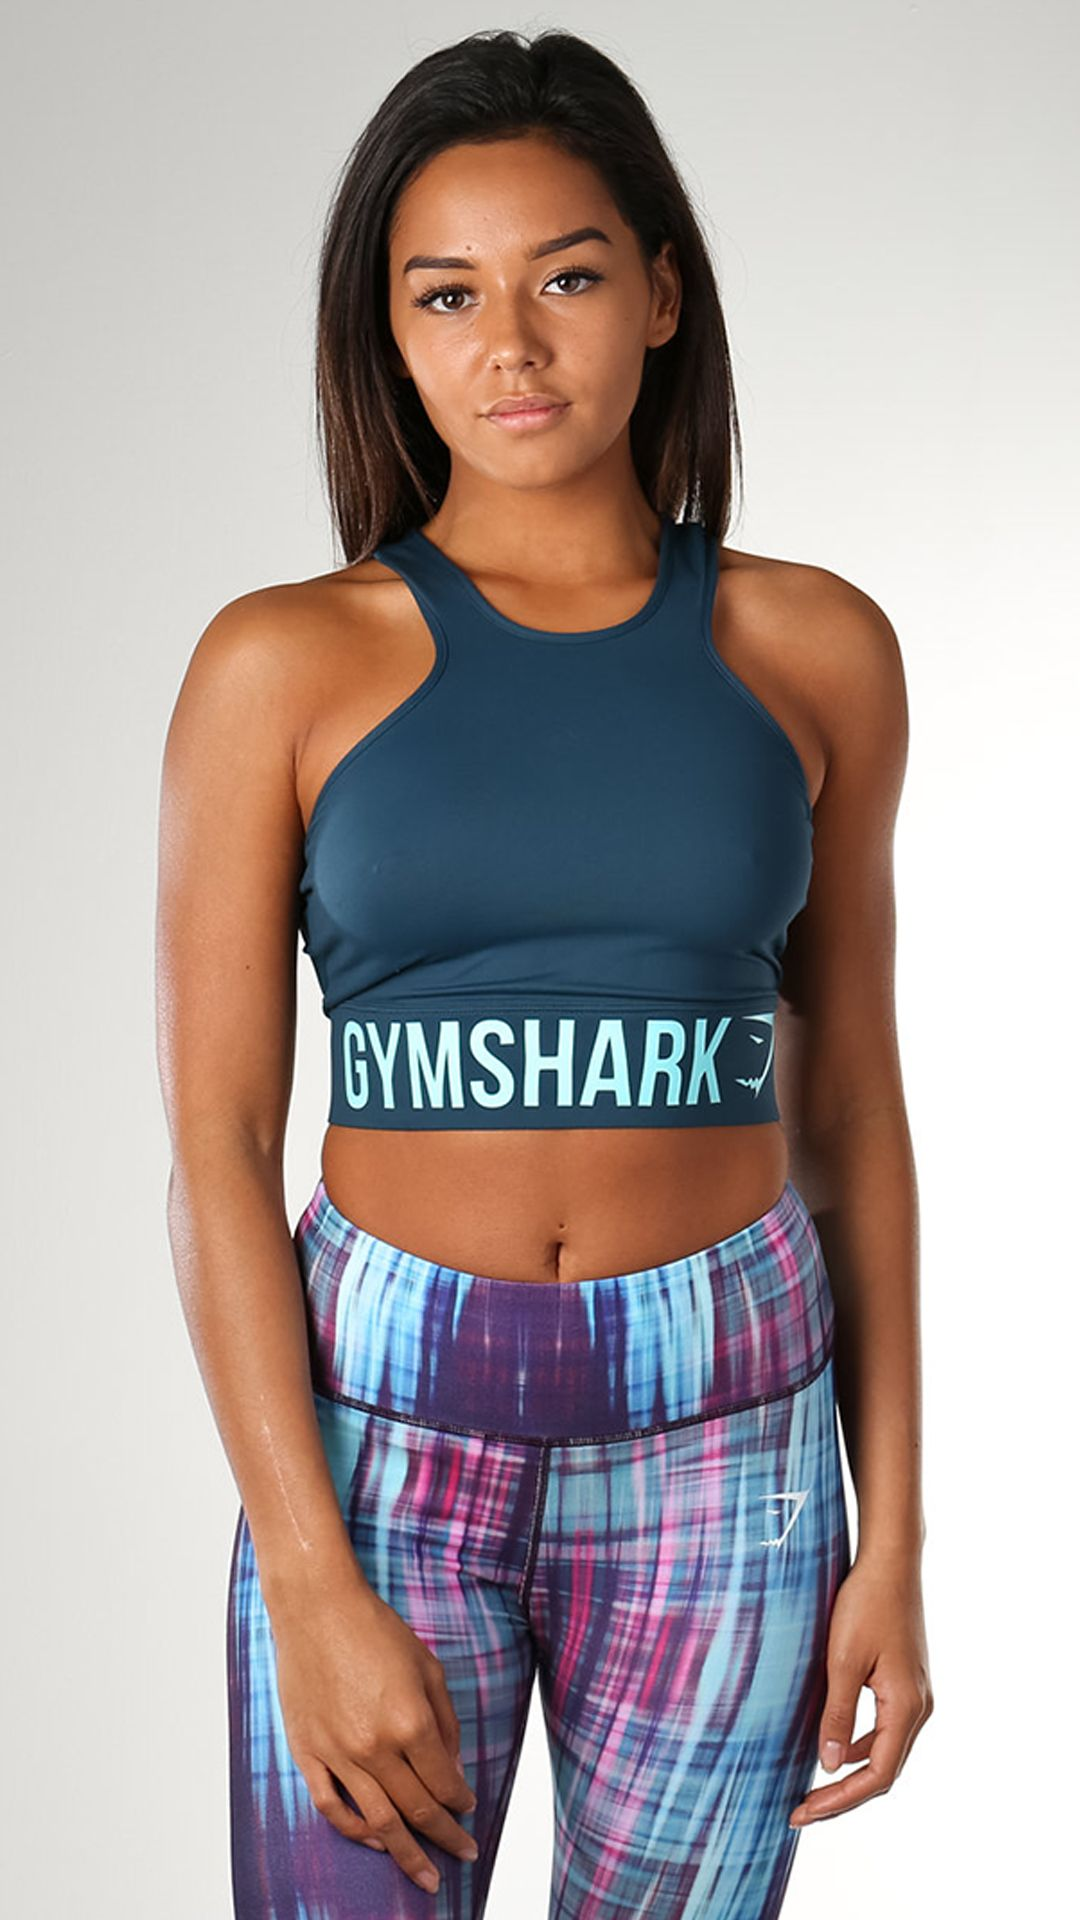 e97abfa87db7d As seen on the Gymshark Athletes. The Serene Sports Bra